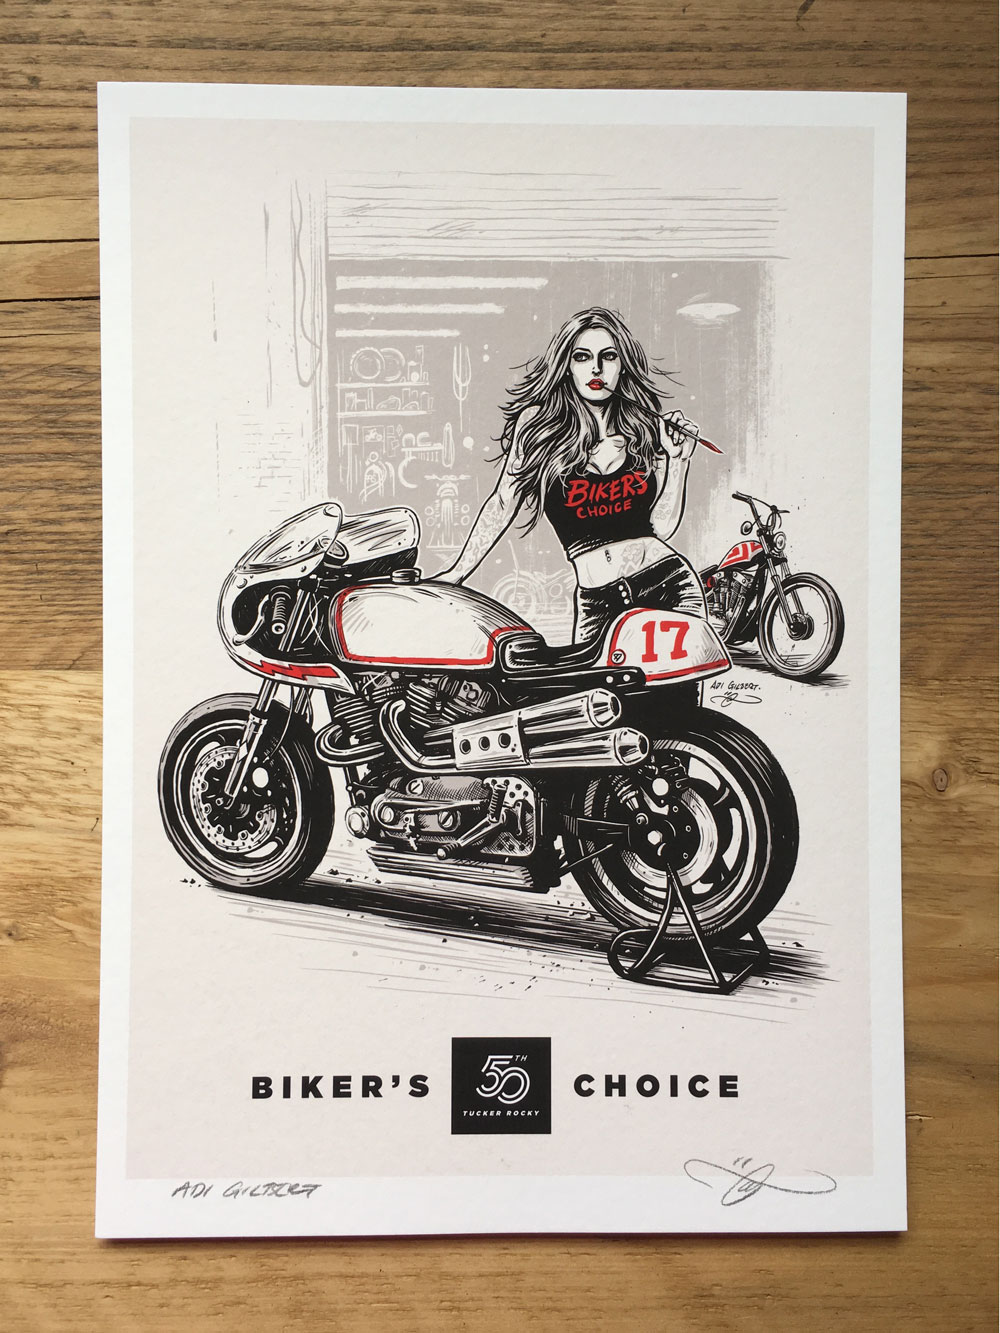 Bikers Choice (with logo / title) - By Adi Gilbert